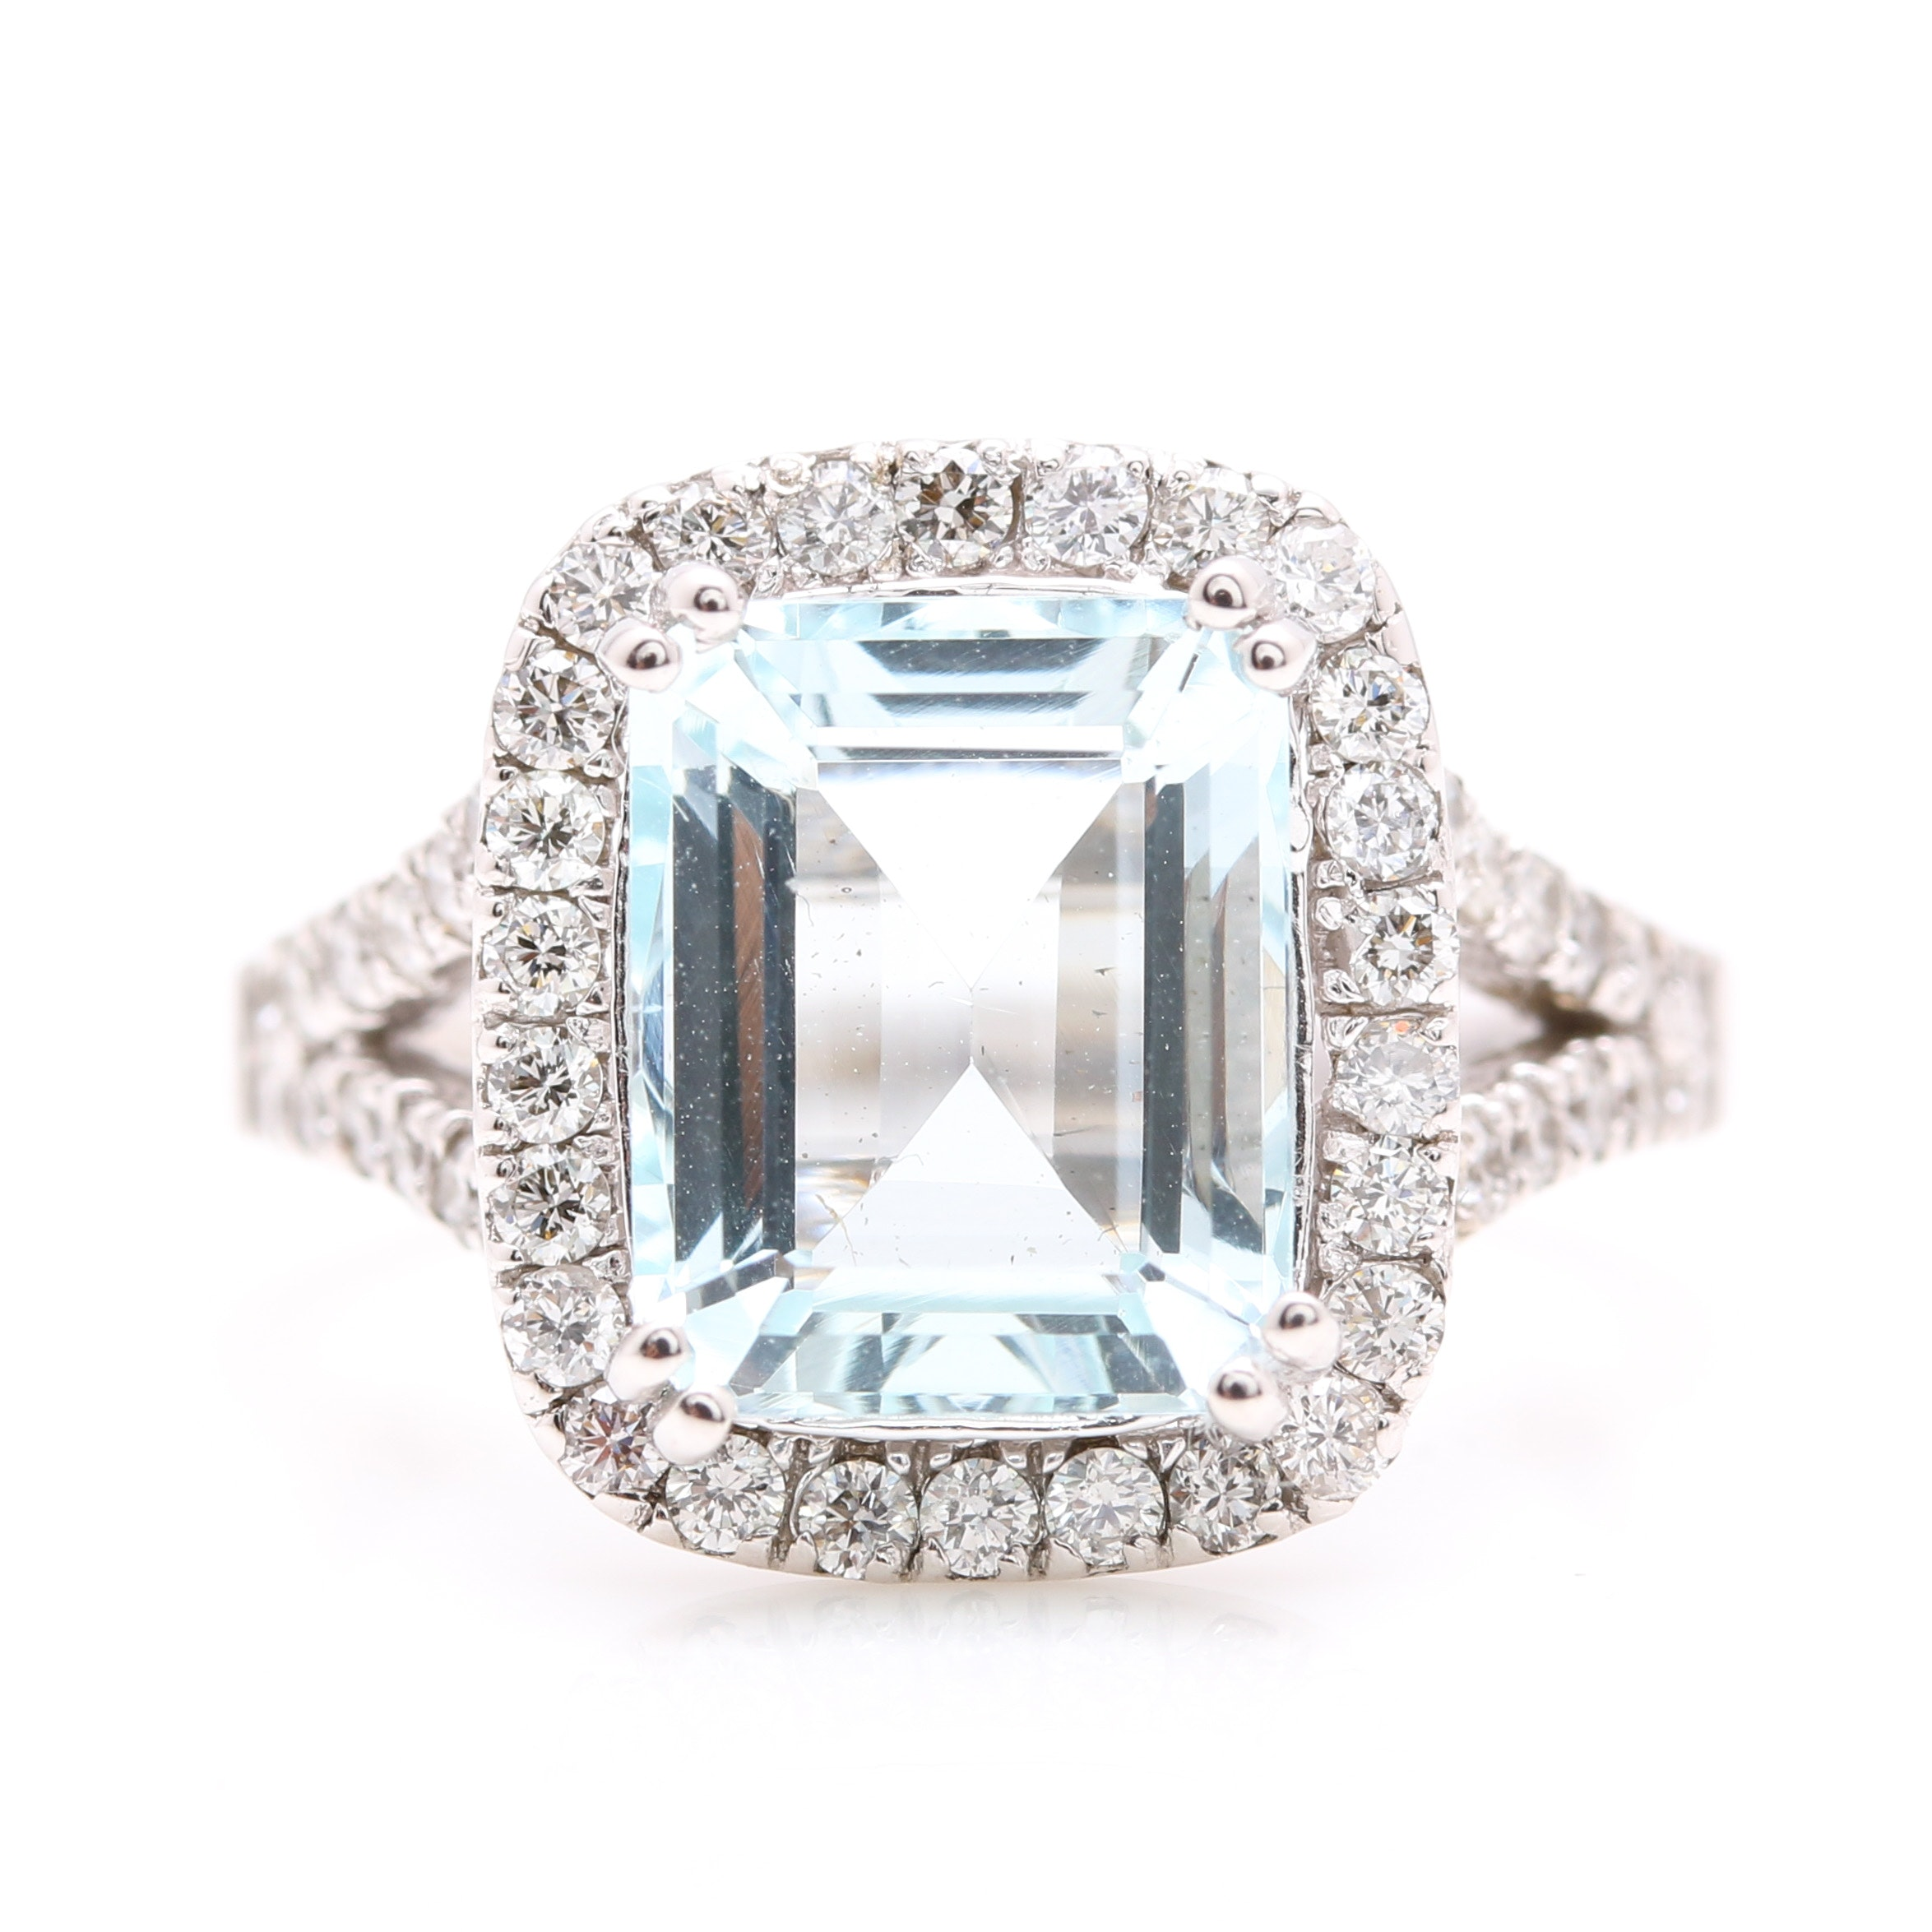 14K White Gold 3.01 CT Aquamarine and Diamond Ring